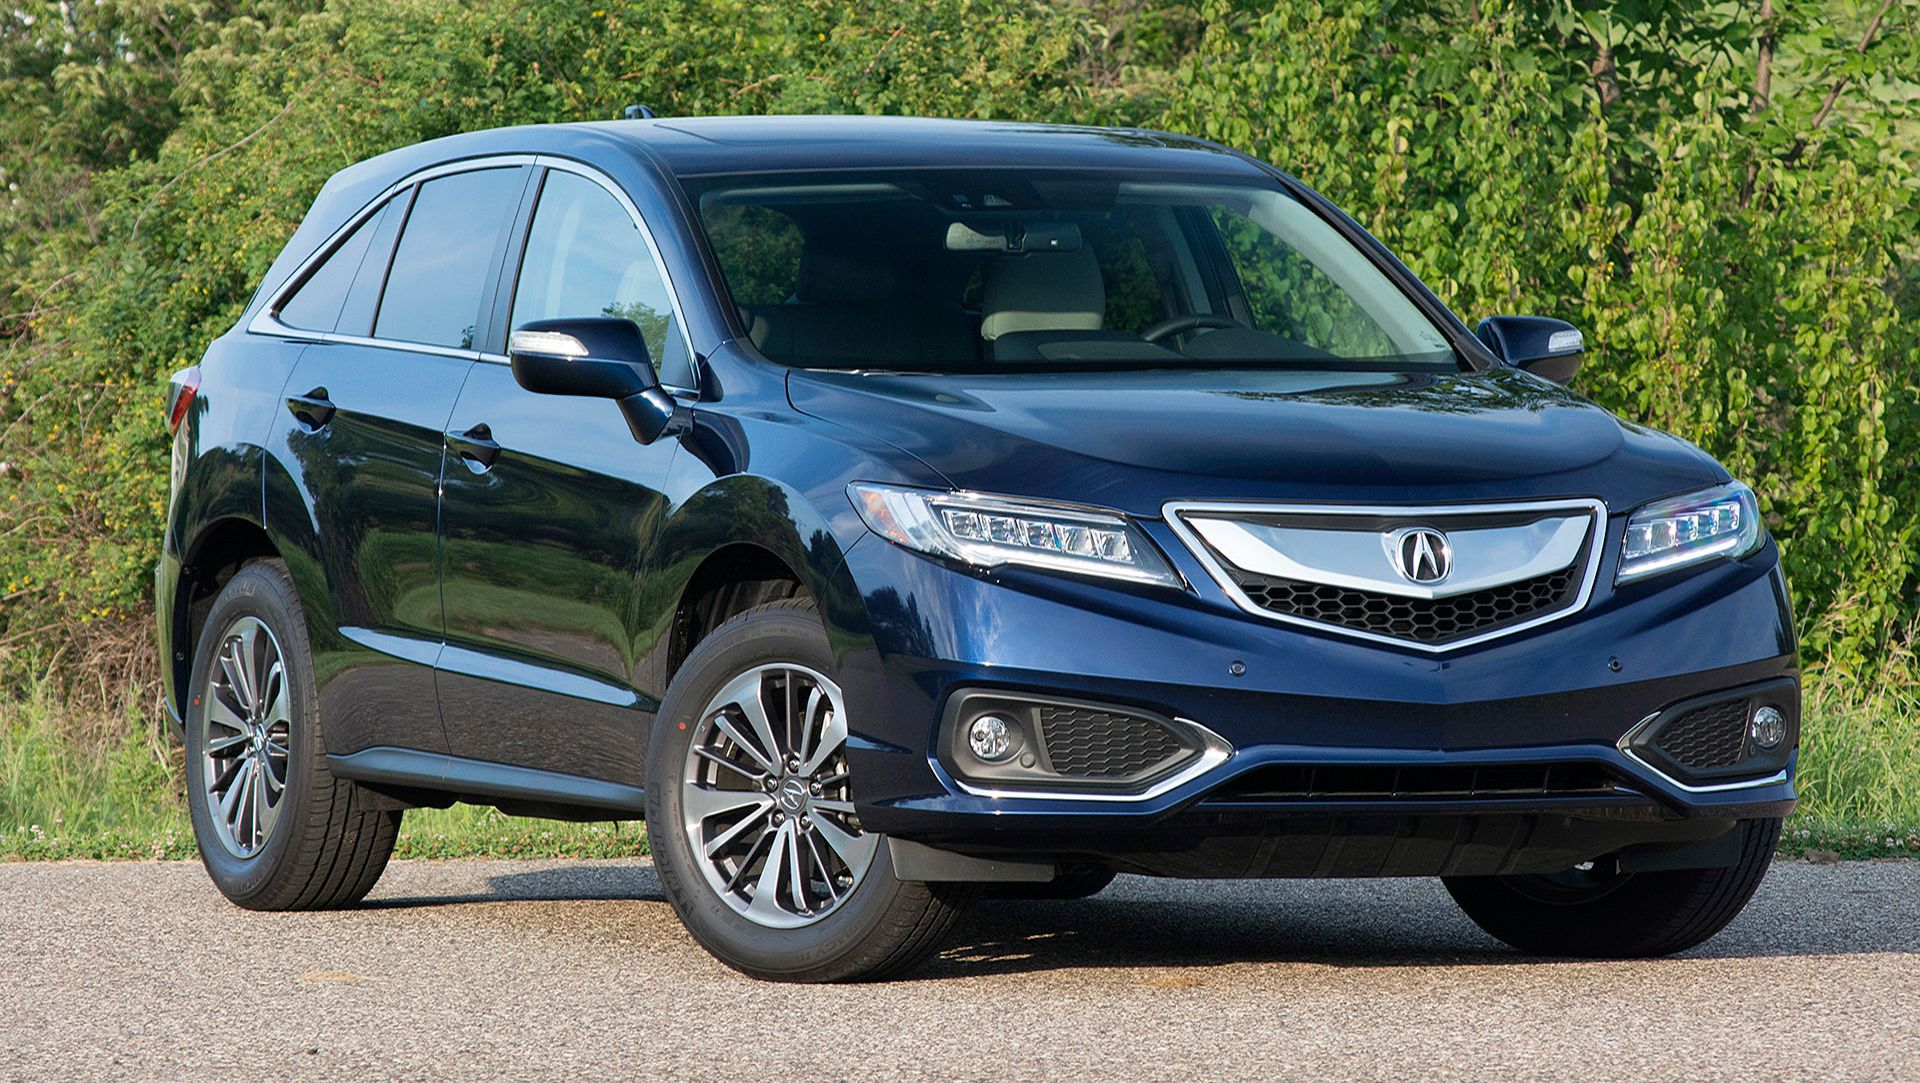 2017 Acura Rdx Sds To Market As The Benchmark Compact Luxury